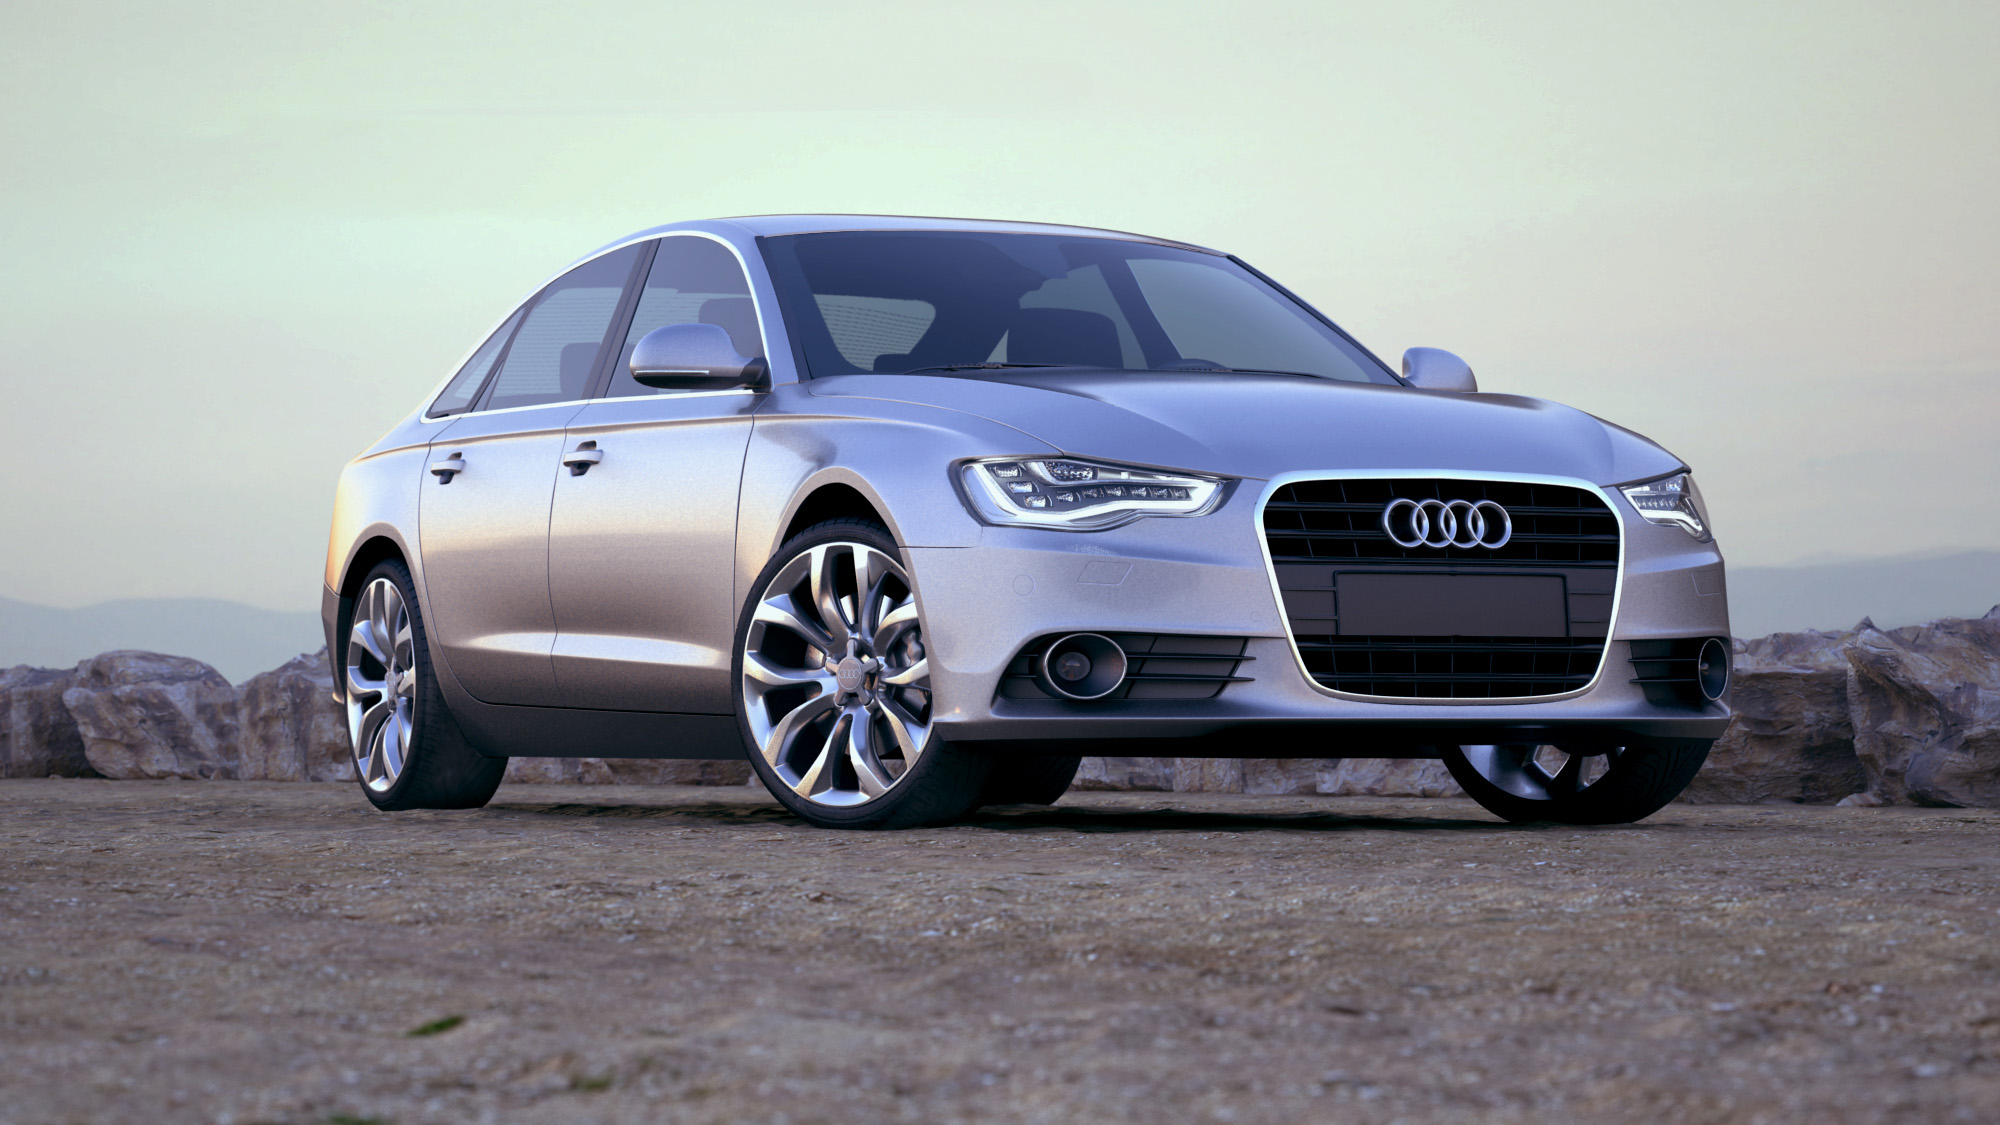 2012 audi a6 c7 pictures information and specs auto. Black Bedroom Furniture Sets. Home Design Ideas